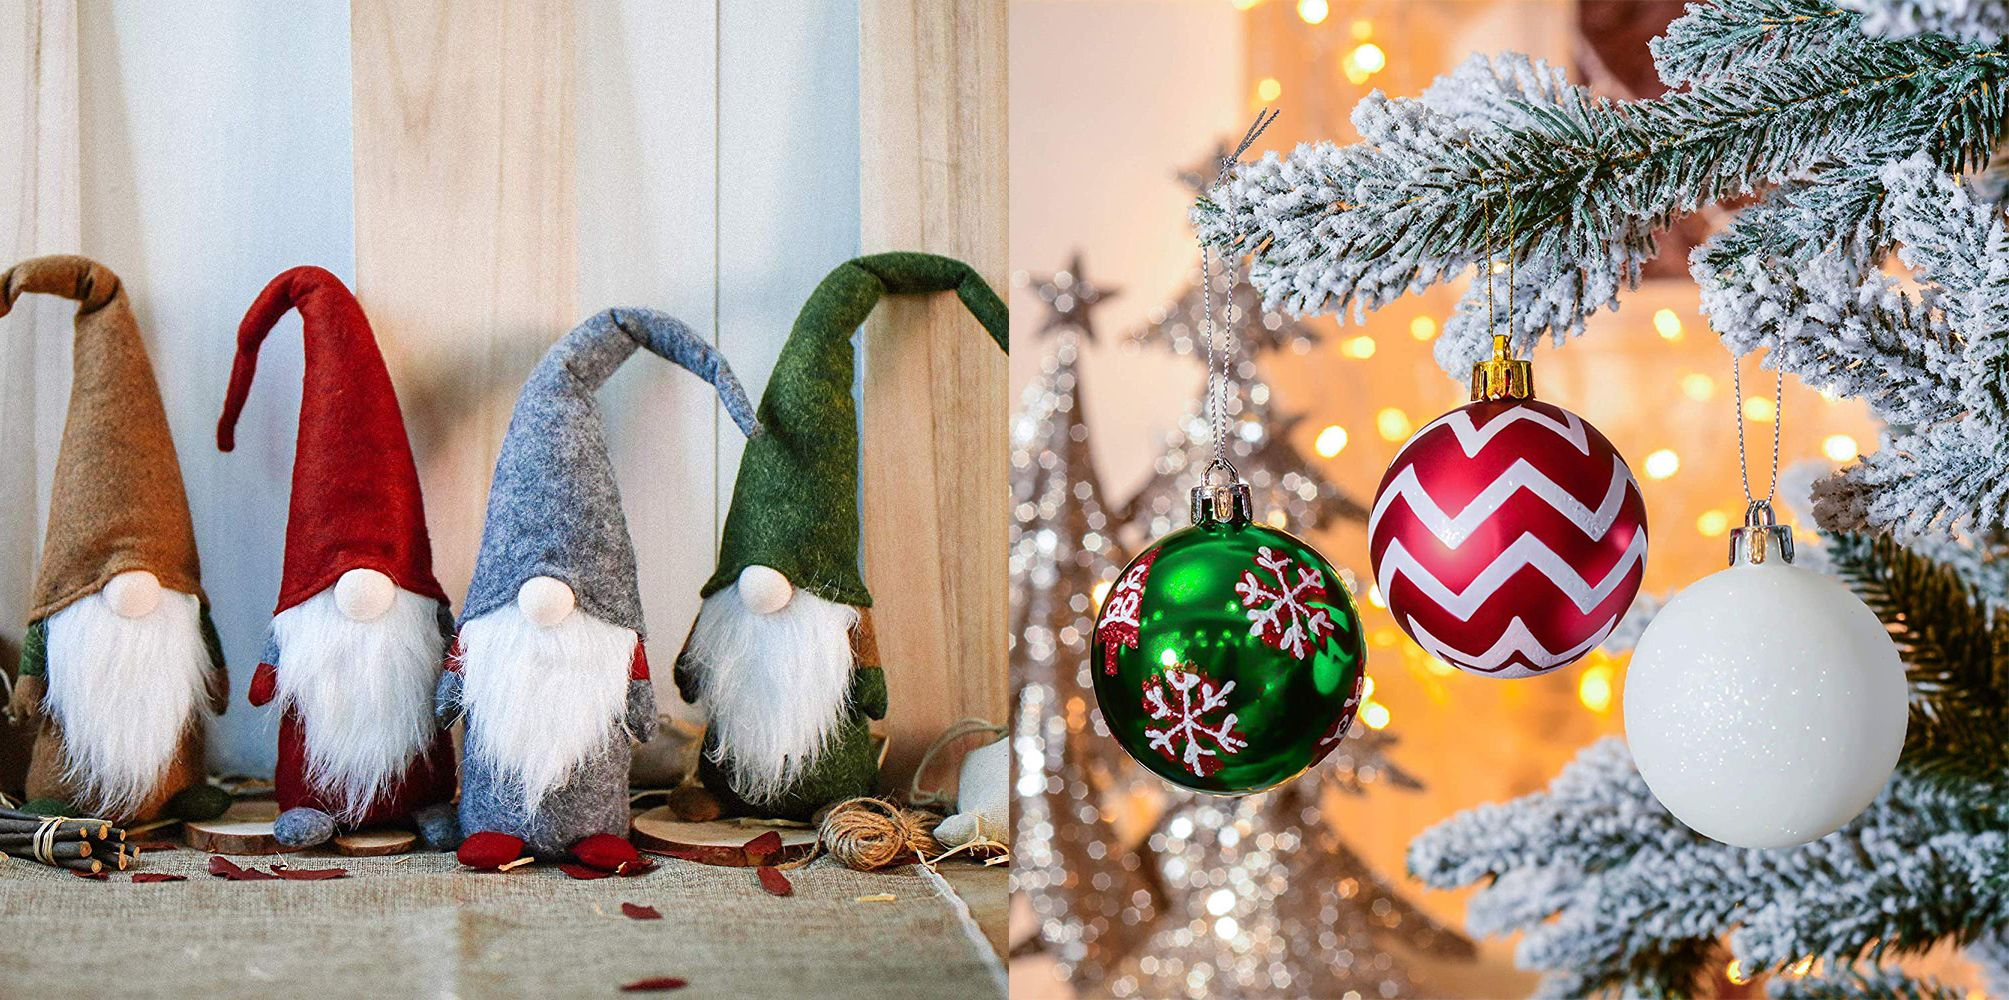 20 Best Christmas Decorations That Will Last for Years